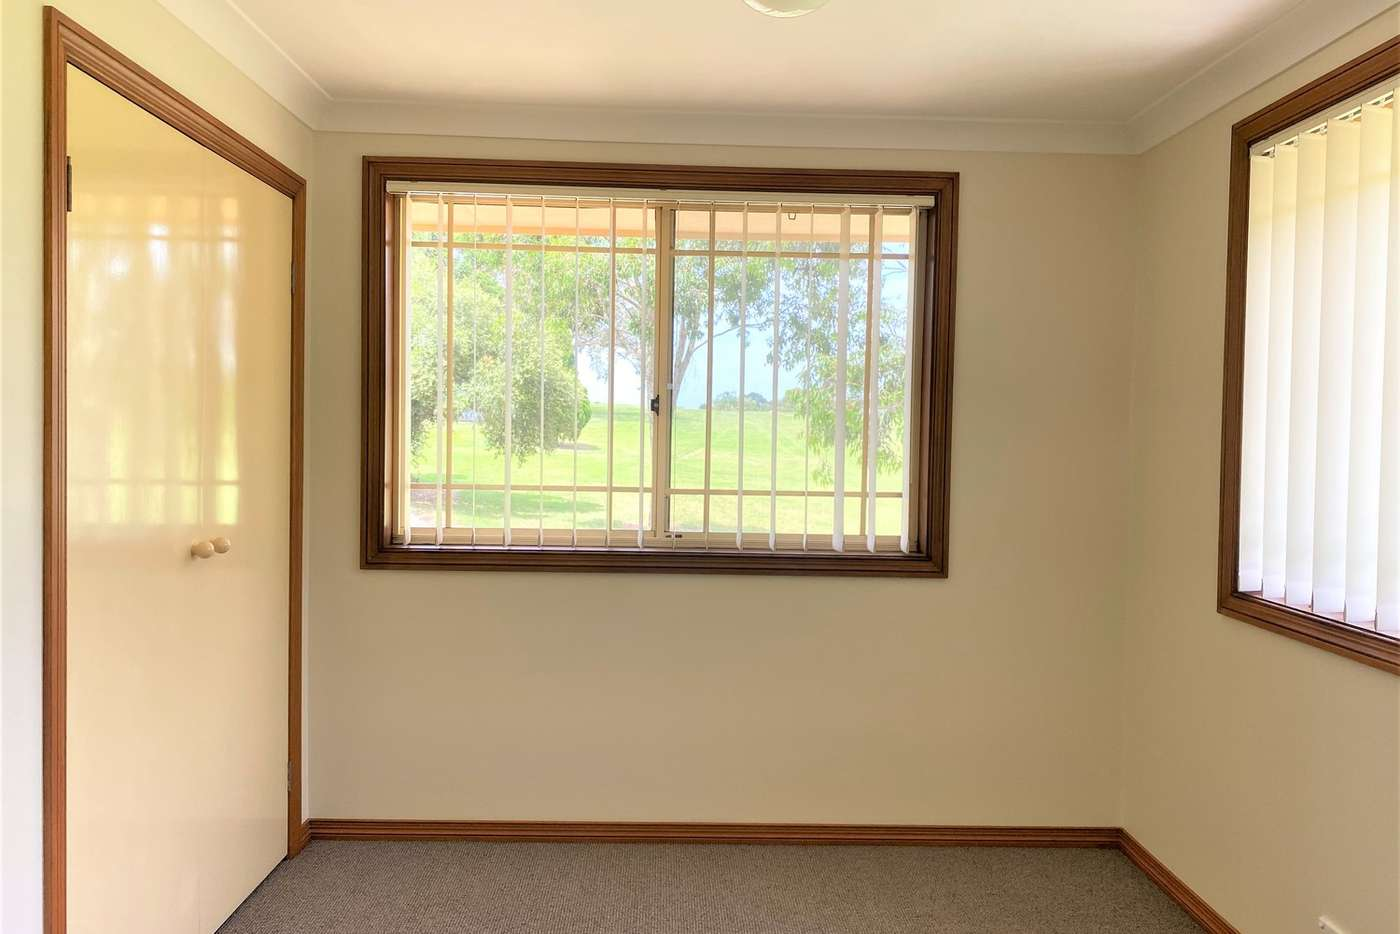 Seventh view of Homely townhouse listing, 1/60 McGowen Crescent, Liverpool NSW 2170